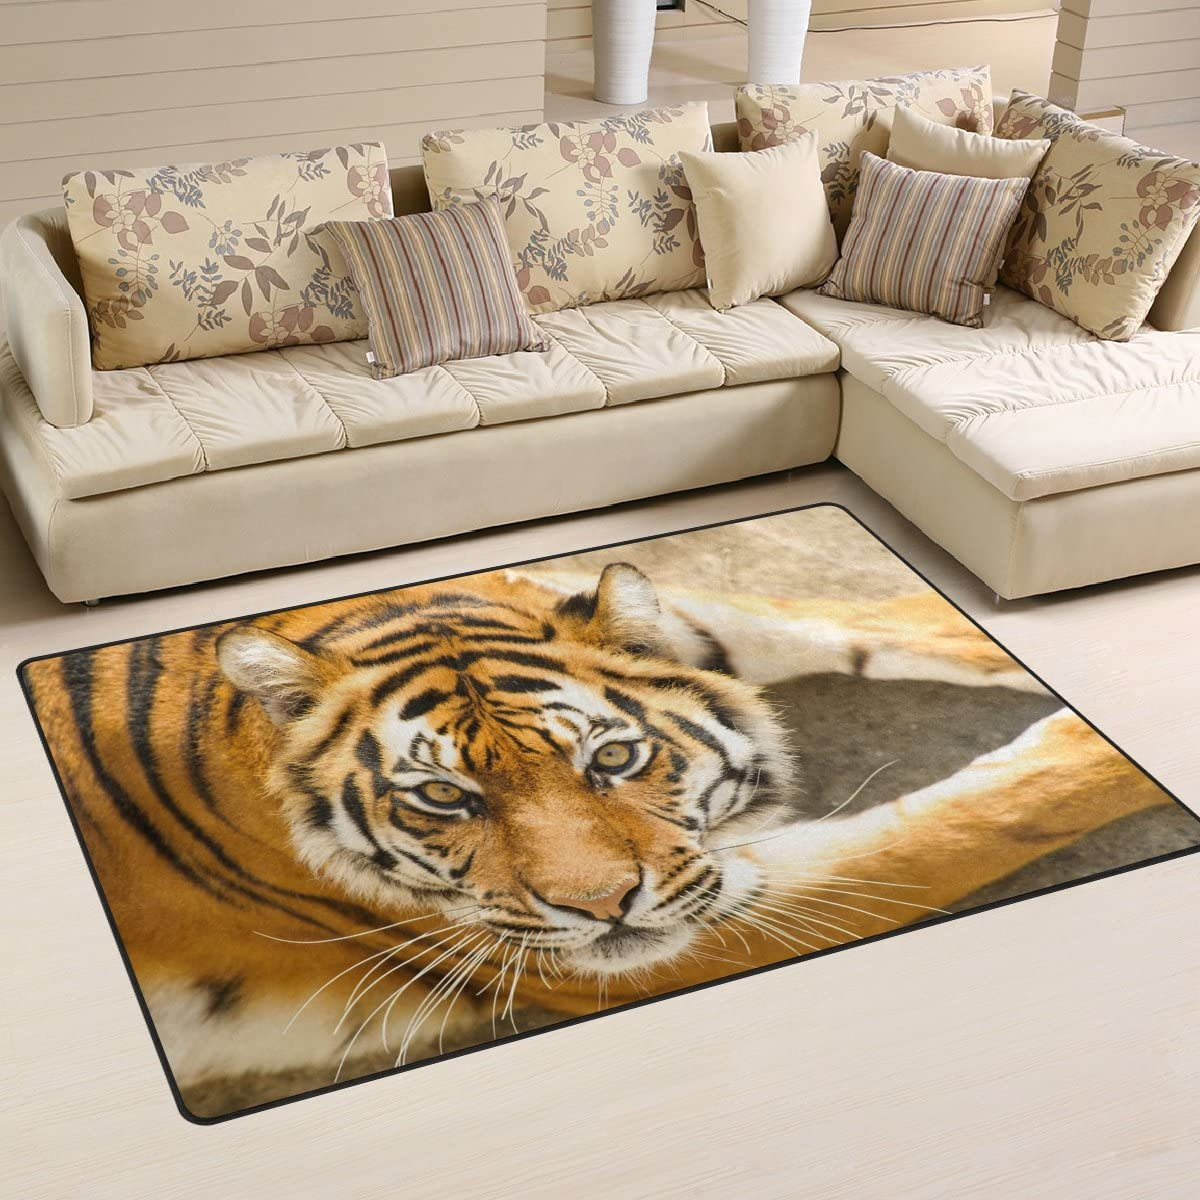 Yochoice Non-slip Area Rugs Home Decor